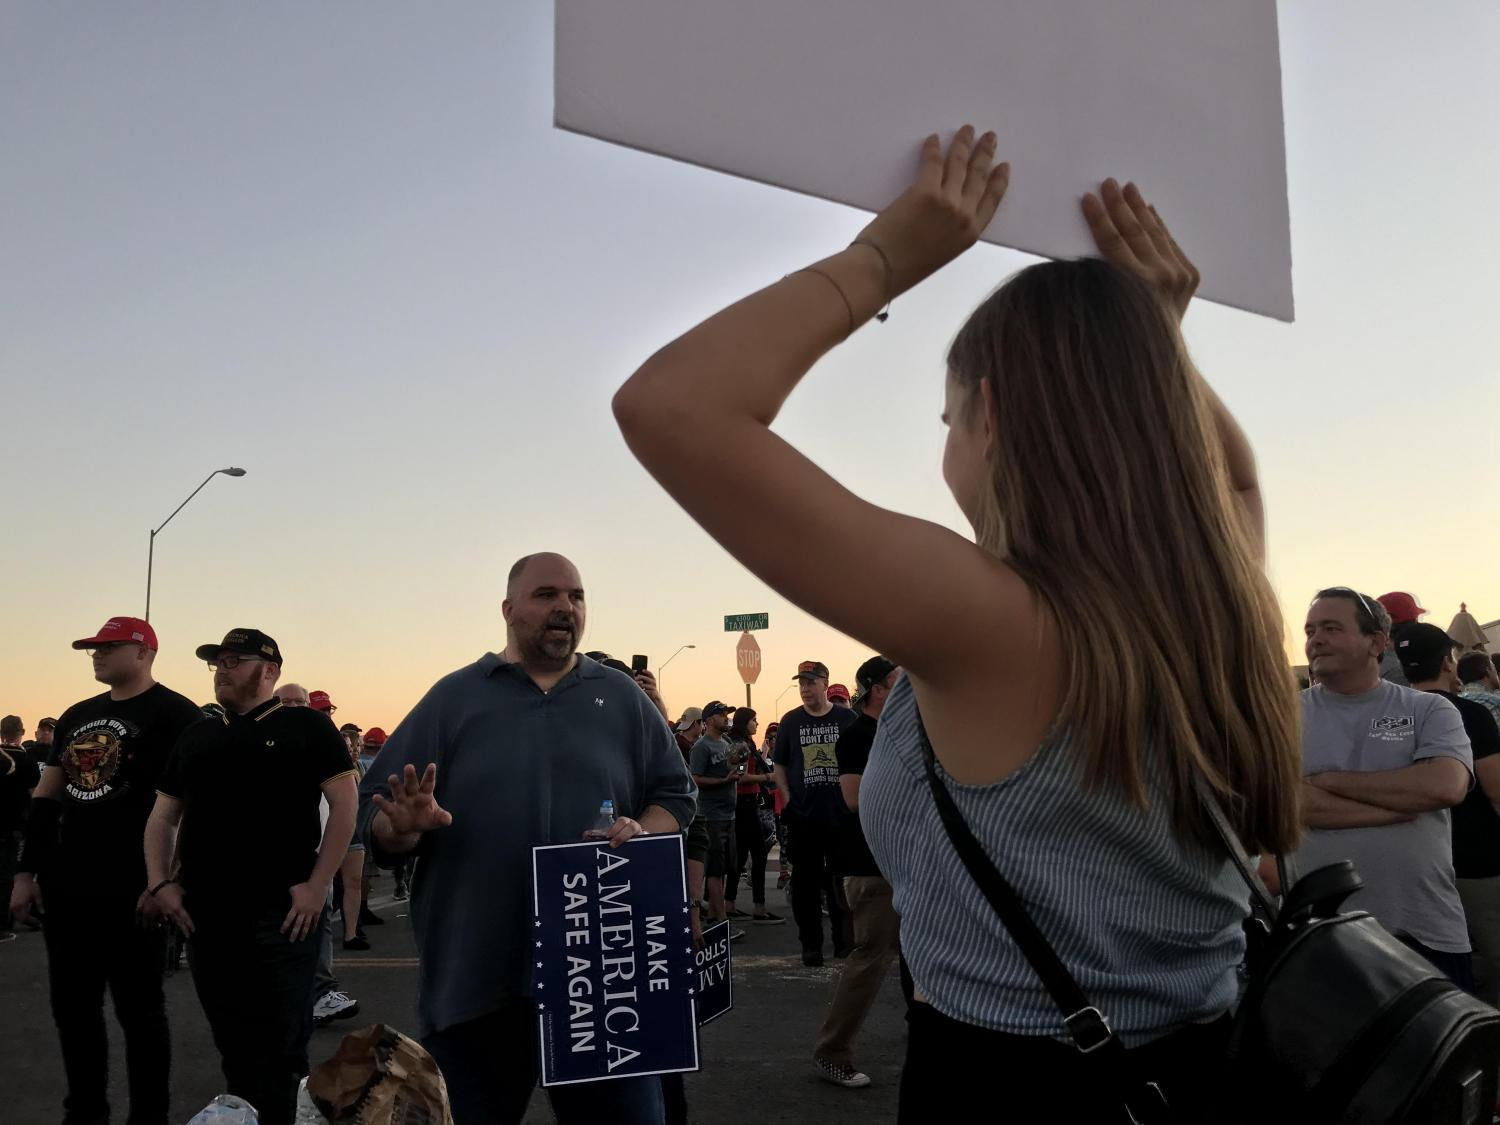 A Trump supporter and protester debate political issues outside the hangar where Trump was speaking in Mesa.